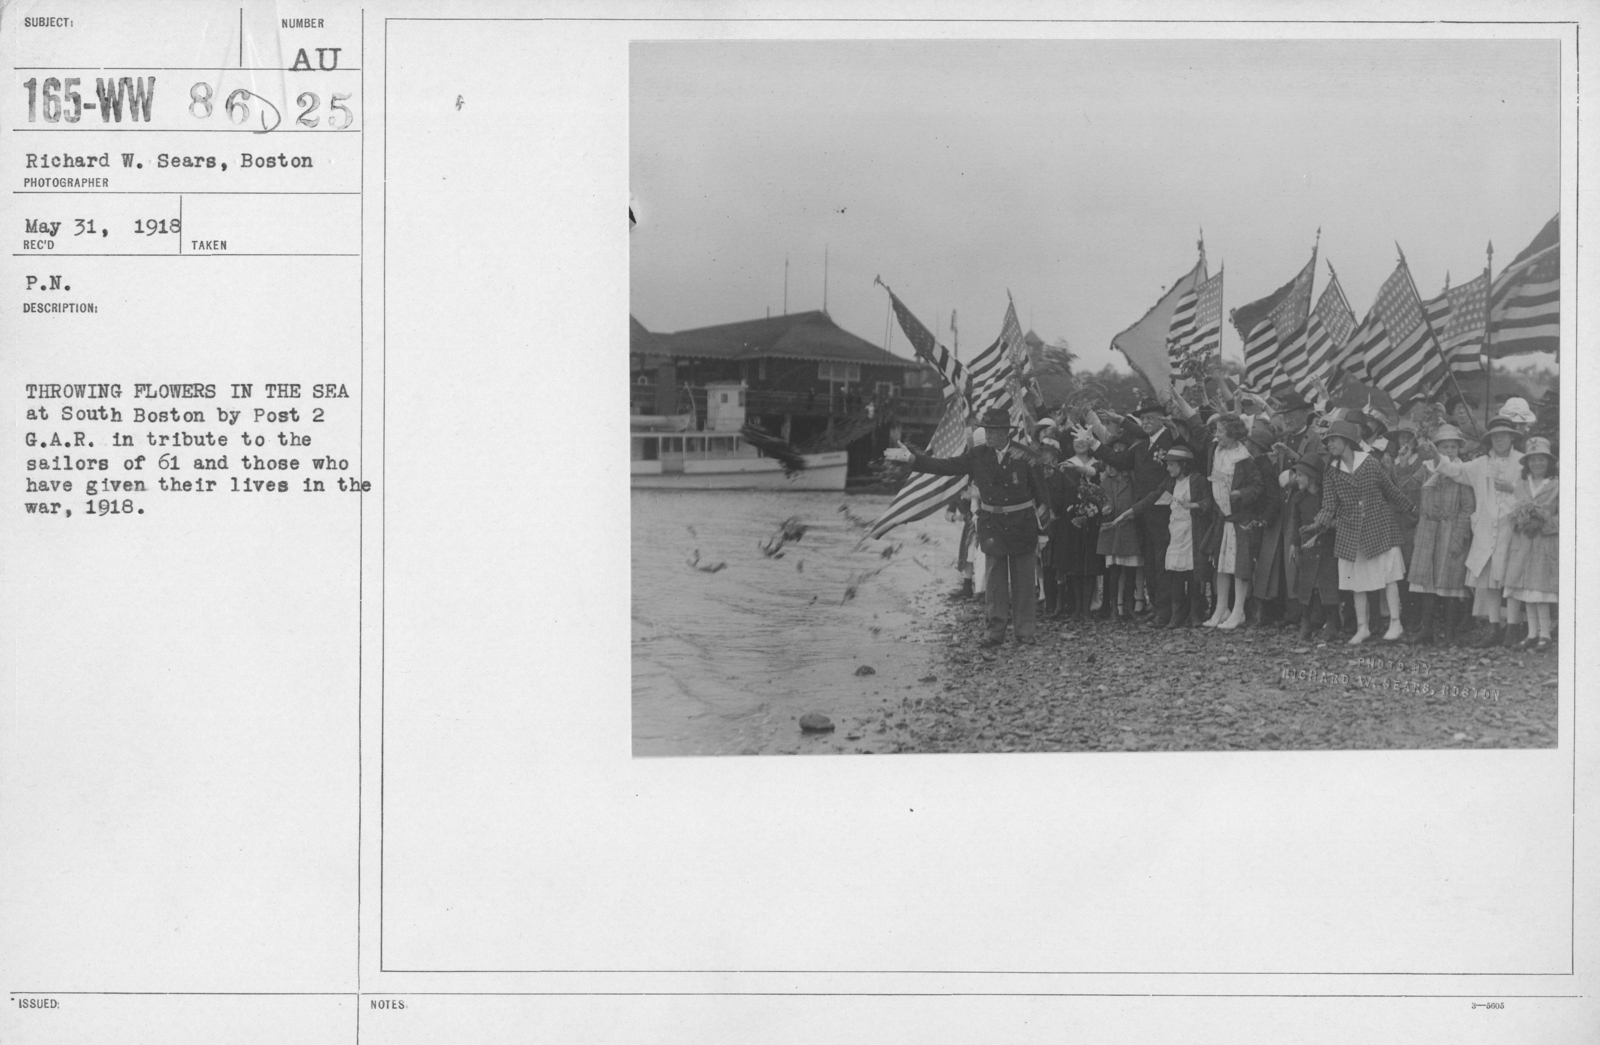 Ceremonies and Parades - Throwing flowers in the sea at South Boston by Post 2 G.A.R. in tribute to the sailors of 61 and those who have given their lives I the war, 1918